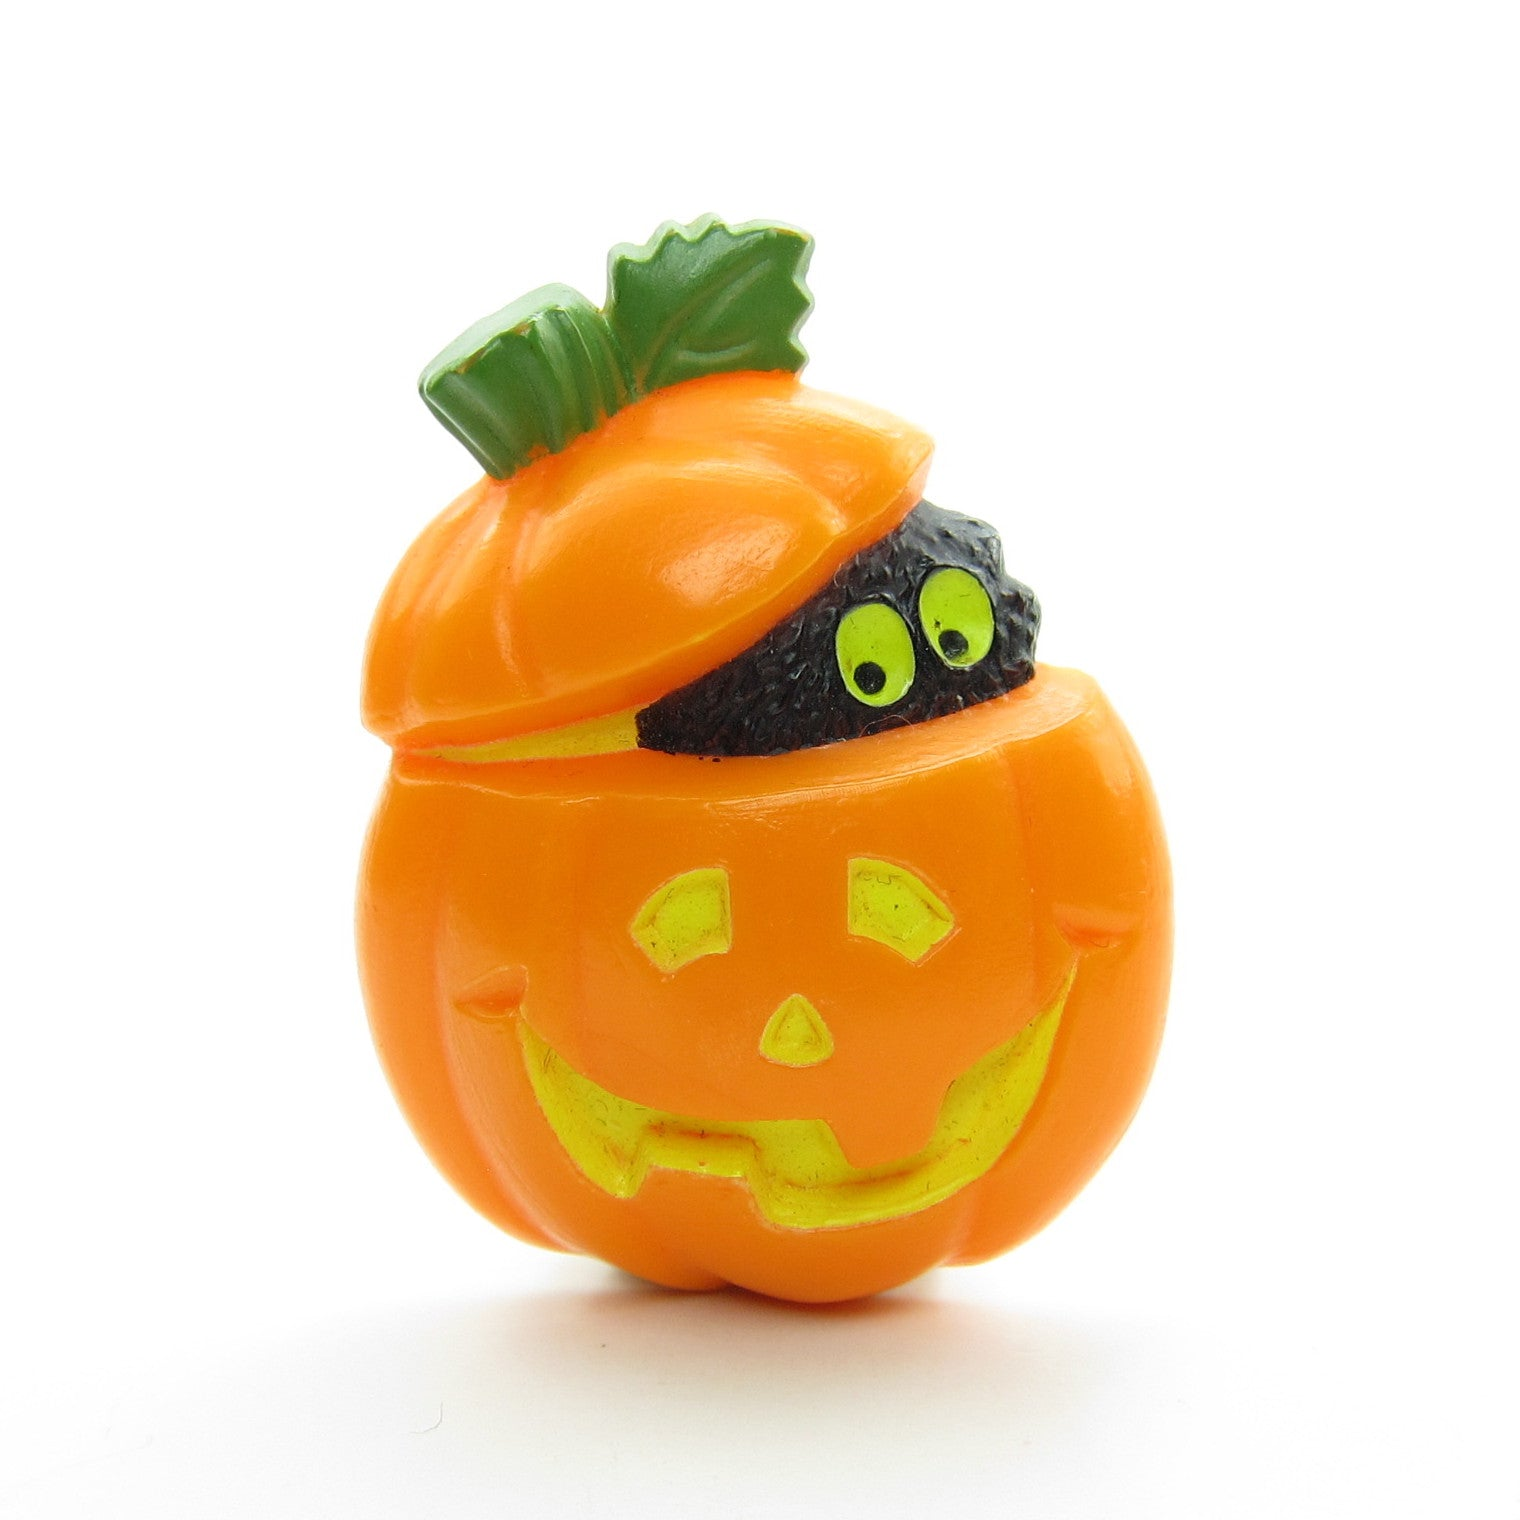 Jack o lantern halloween pumpkin pin with monster eyes